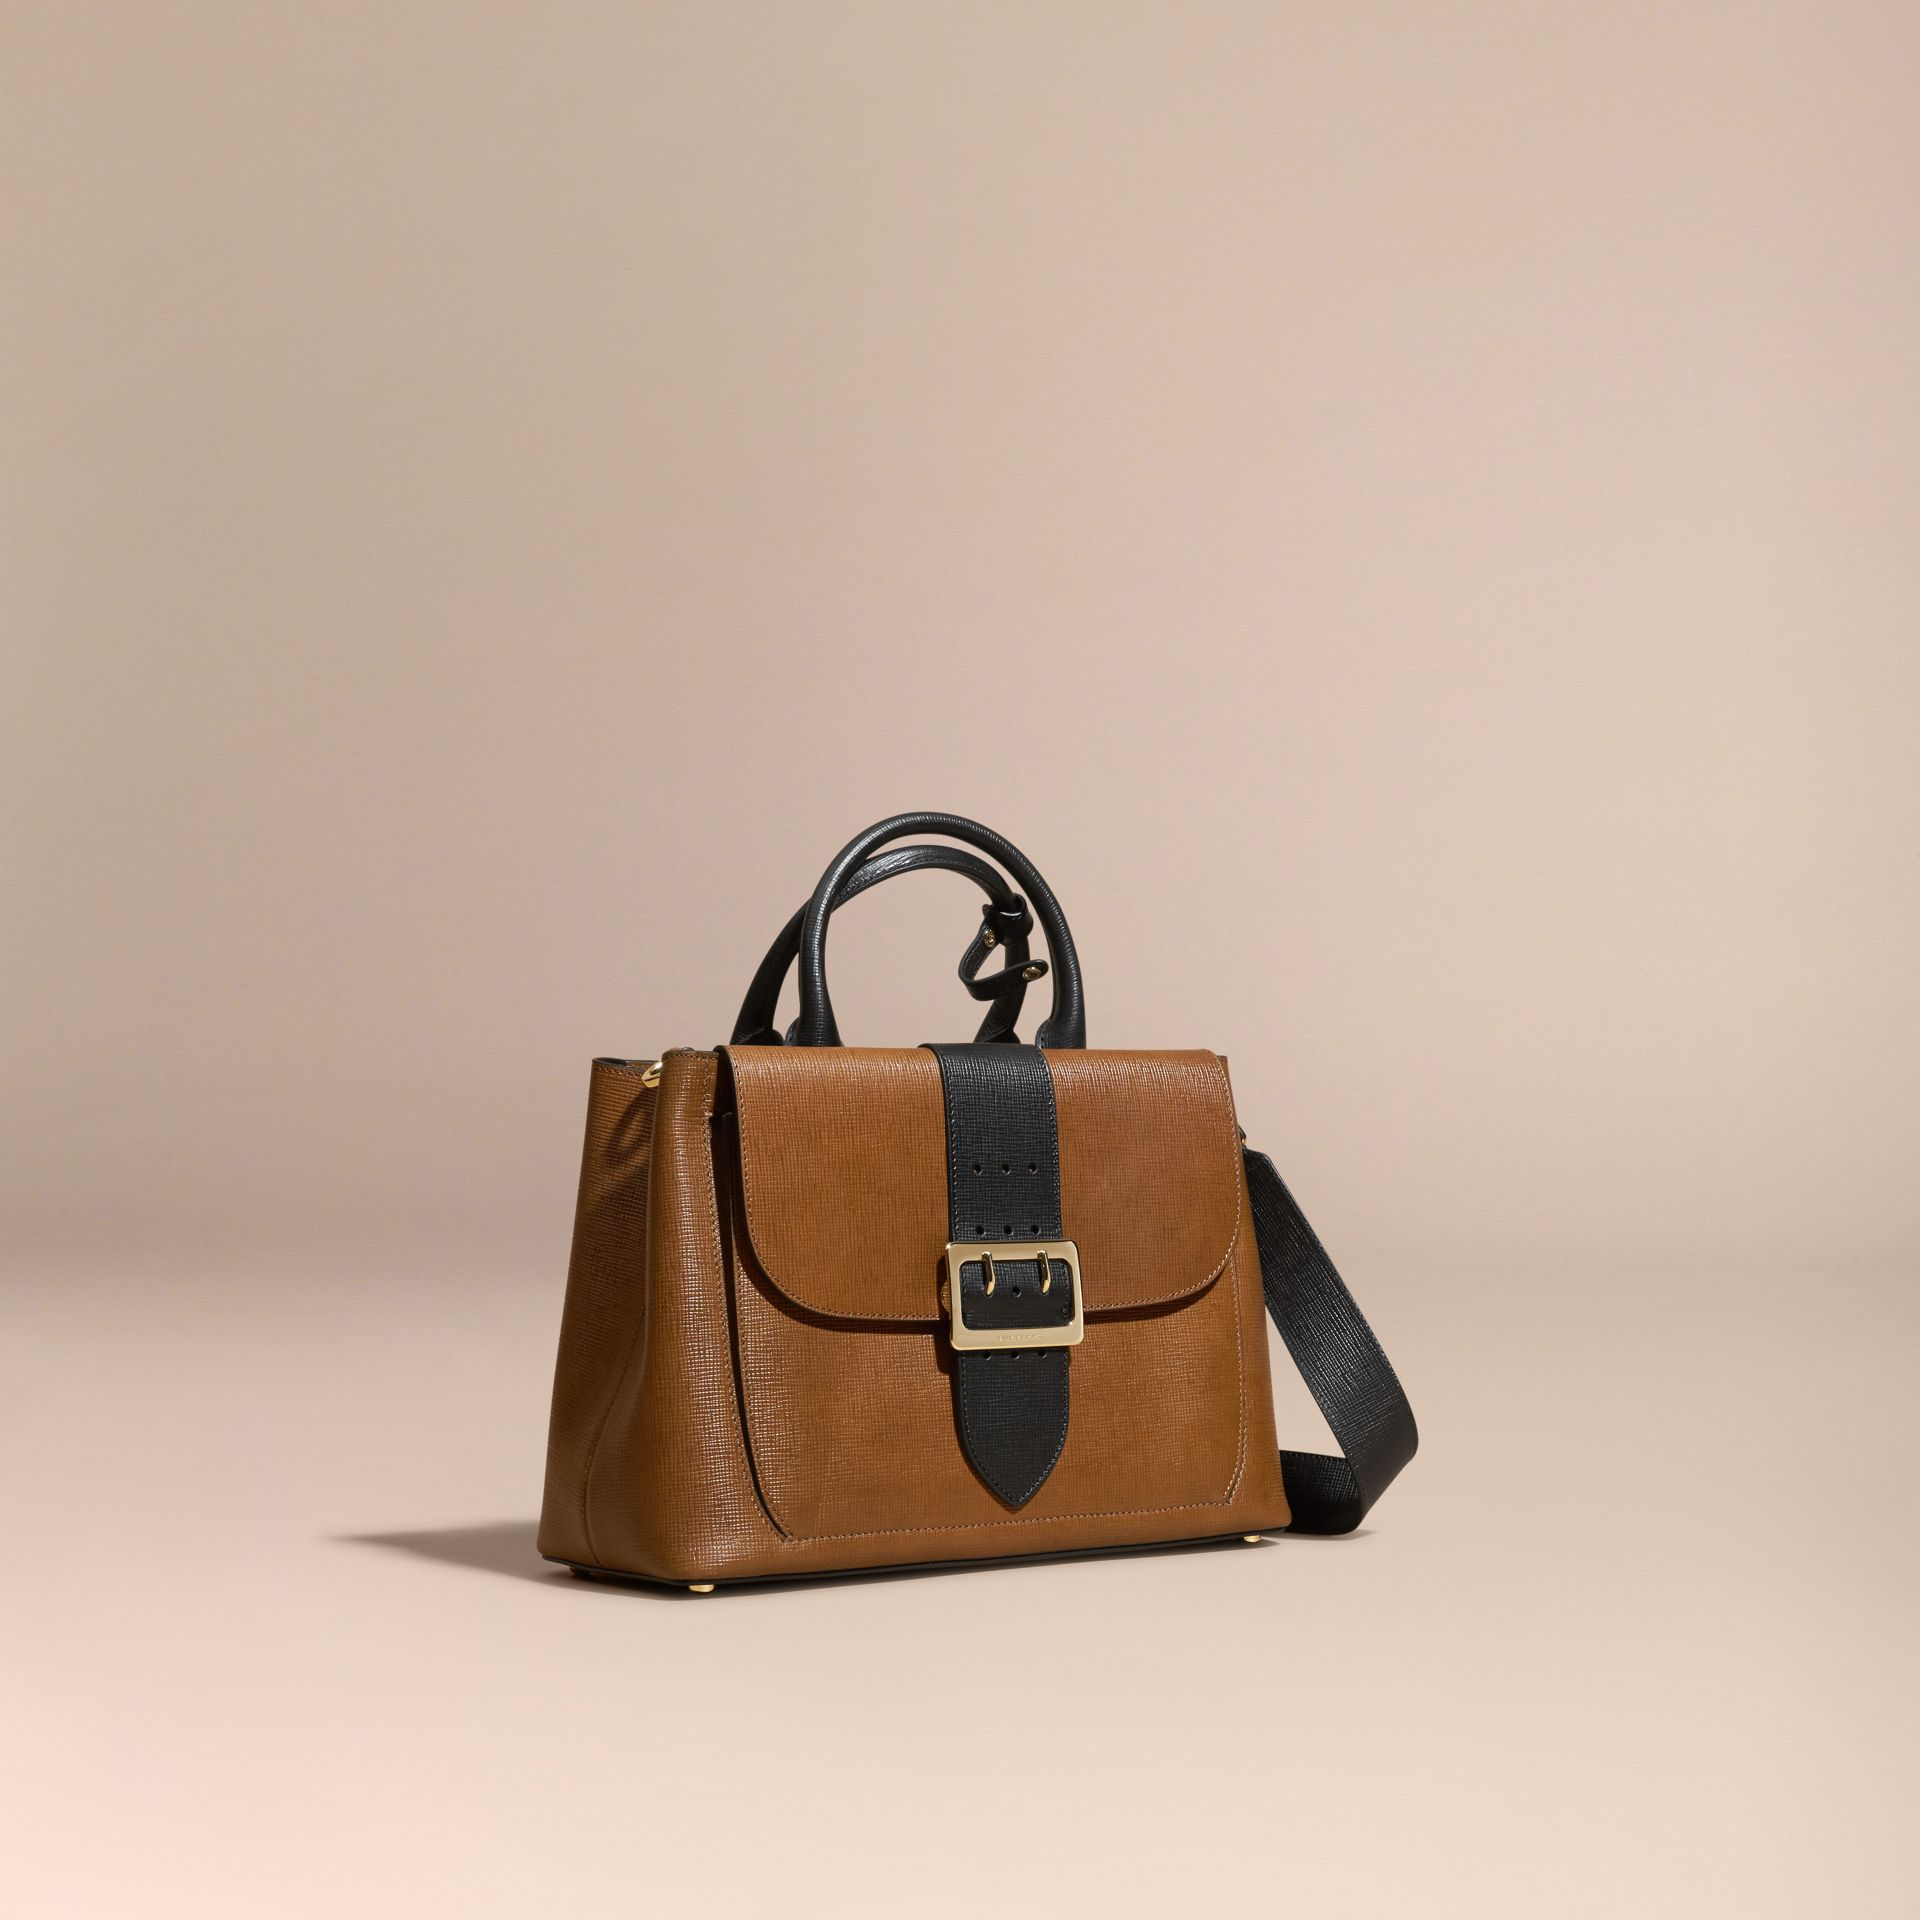 Tan The Medium Saddle Bag in Textured Bonded Leather - gallery image 1